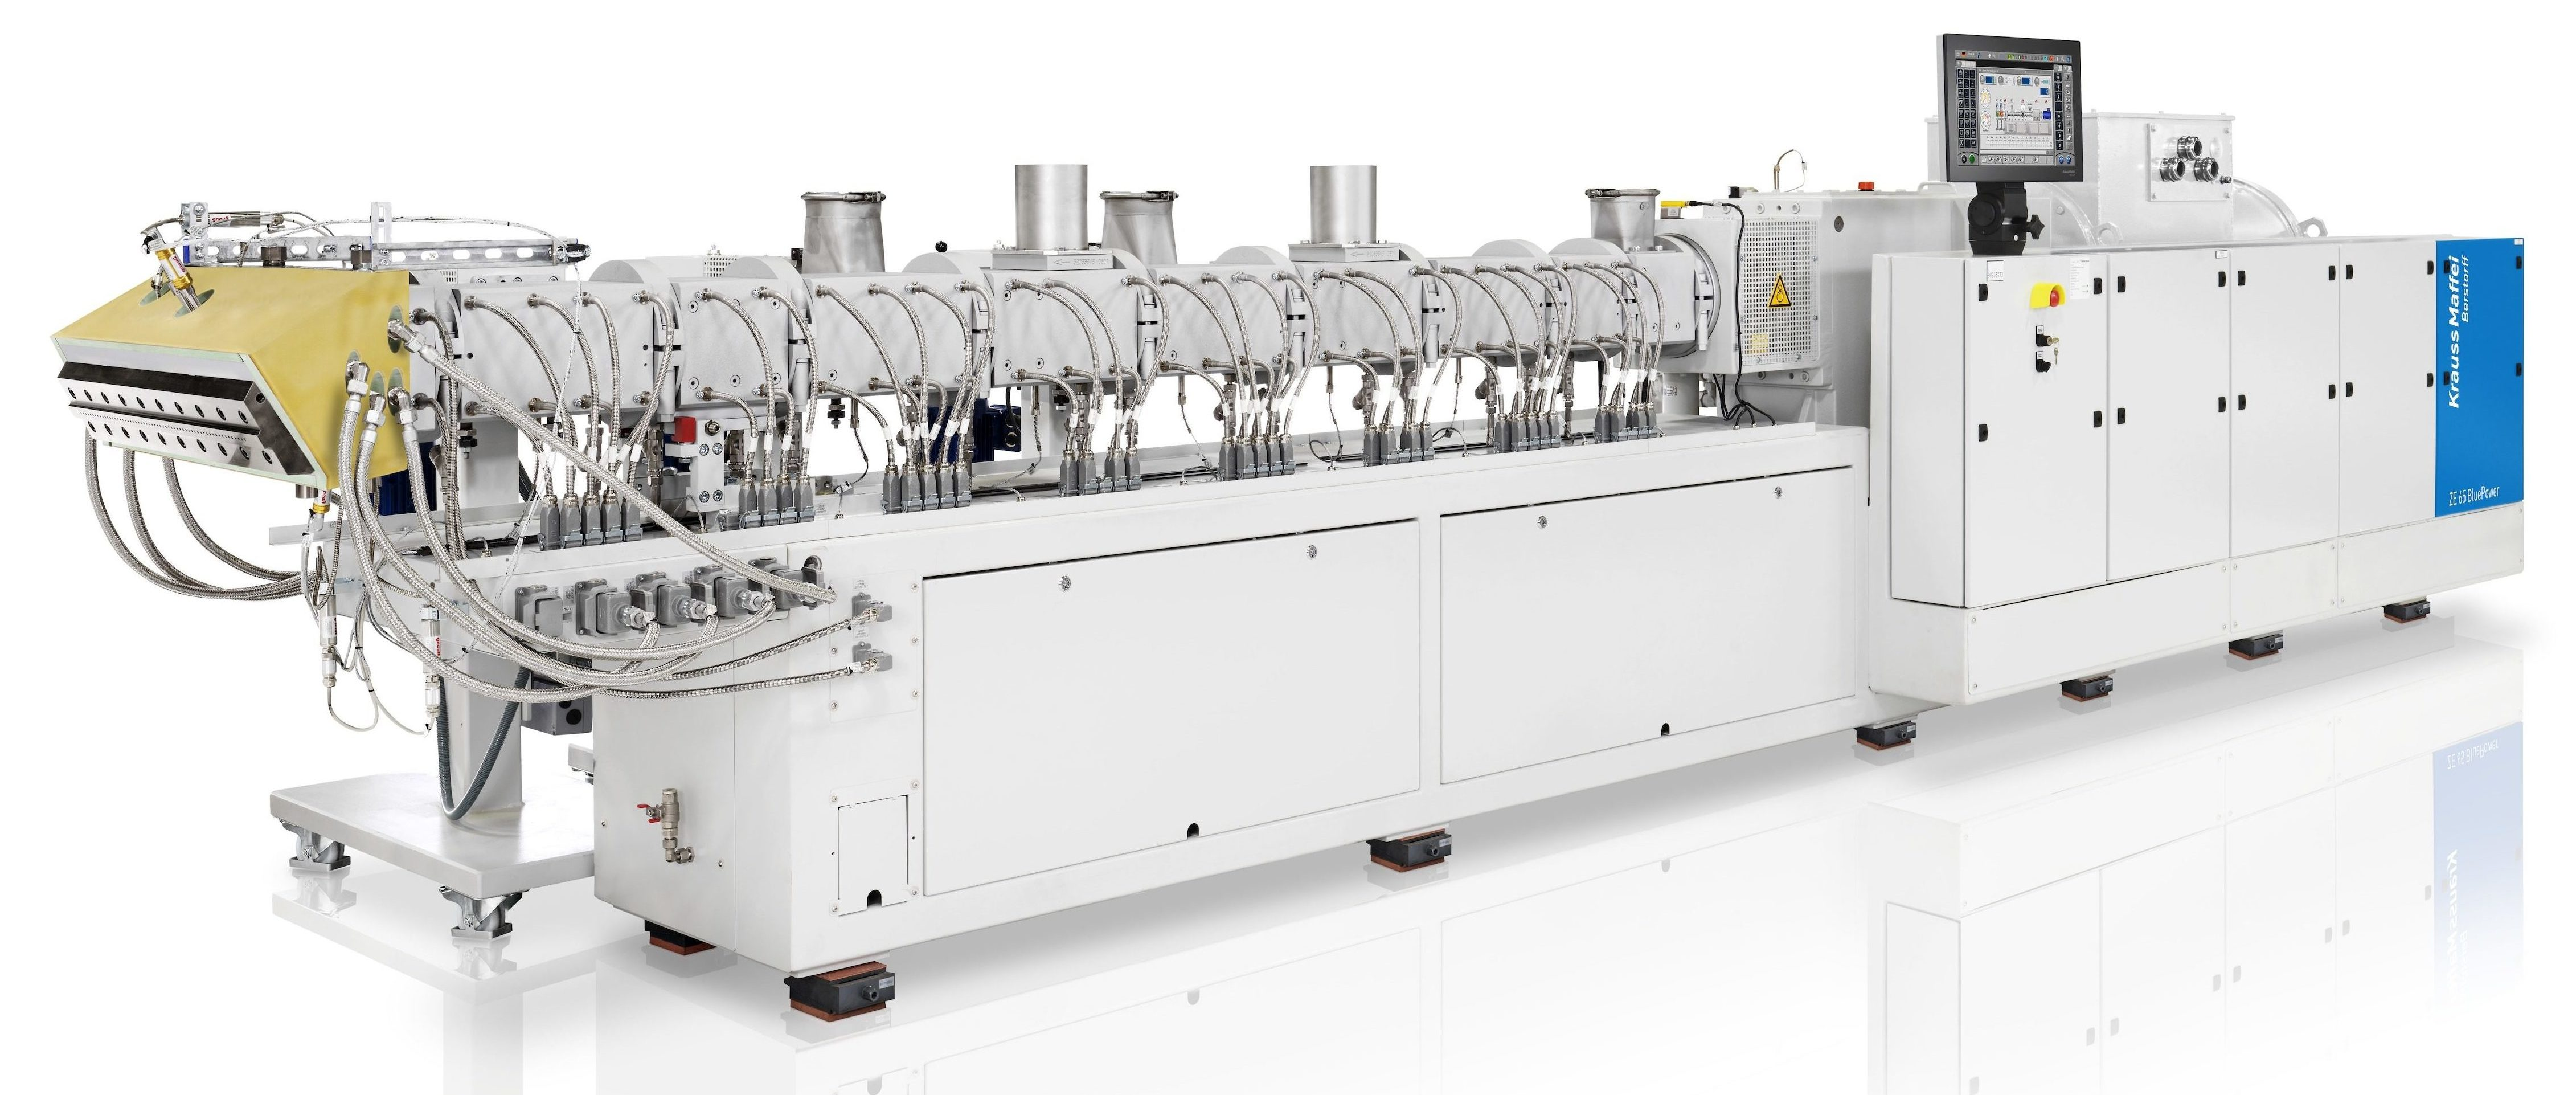 Compauding Twin screw extruder